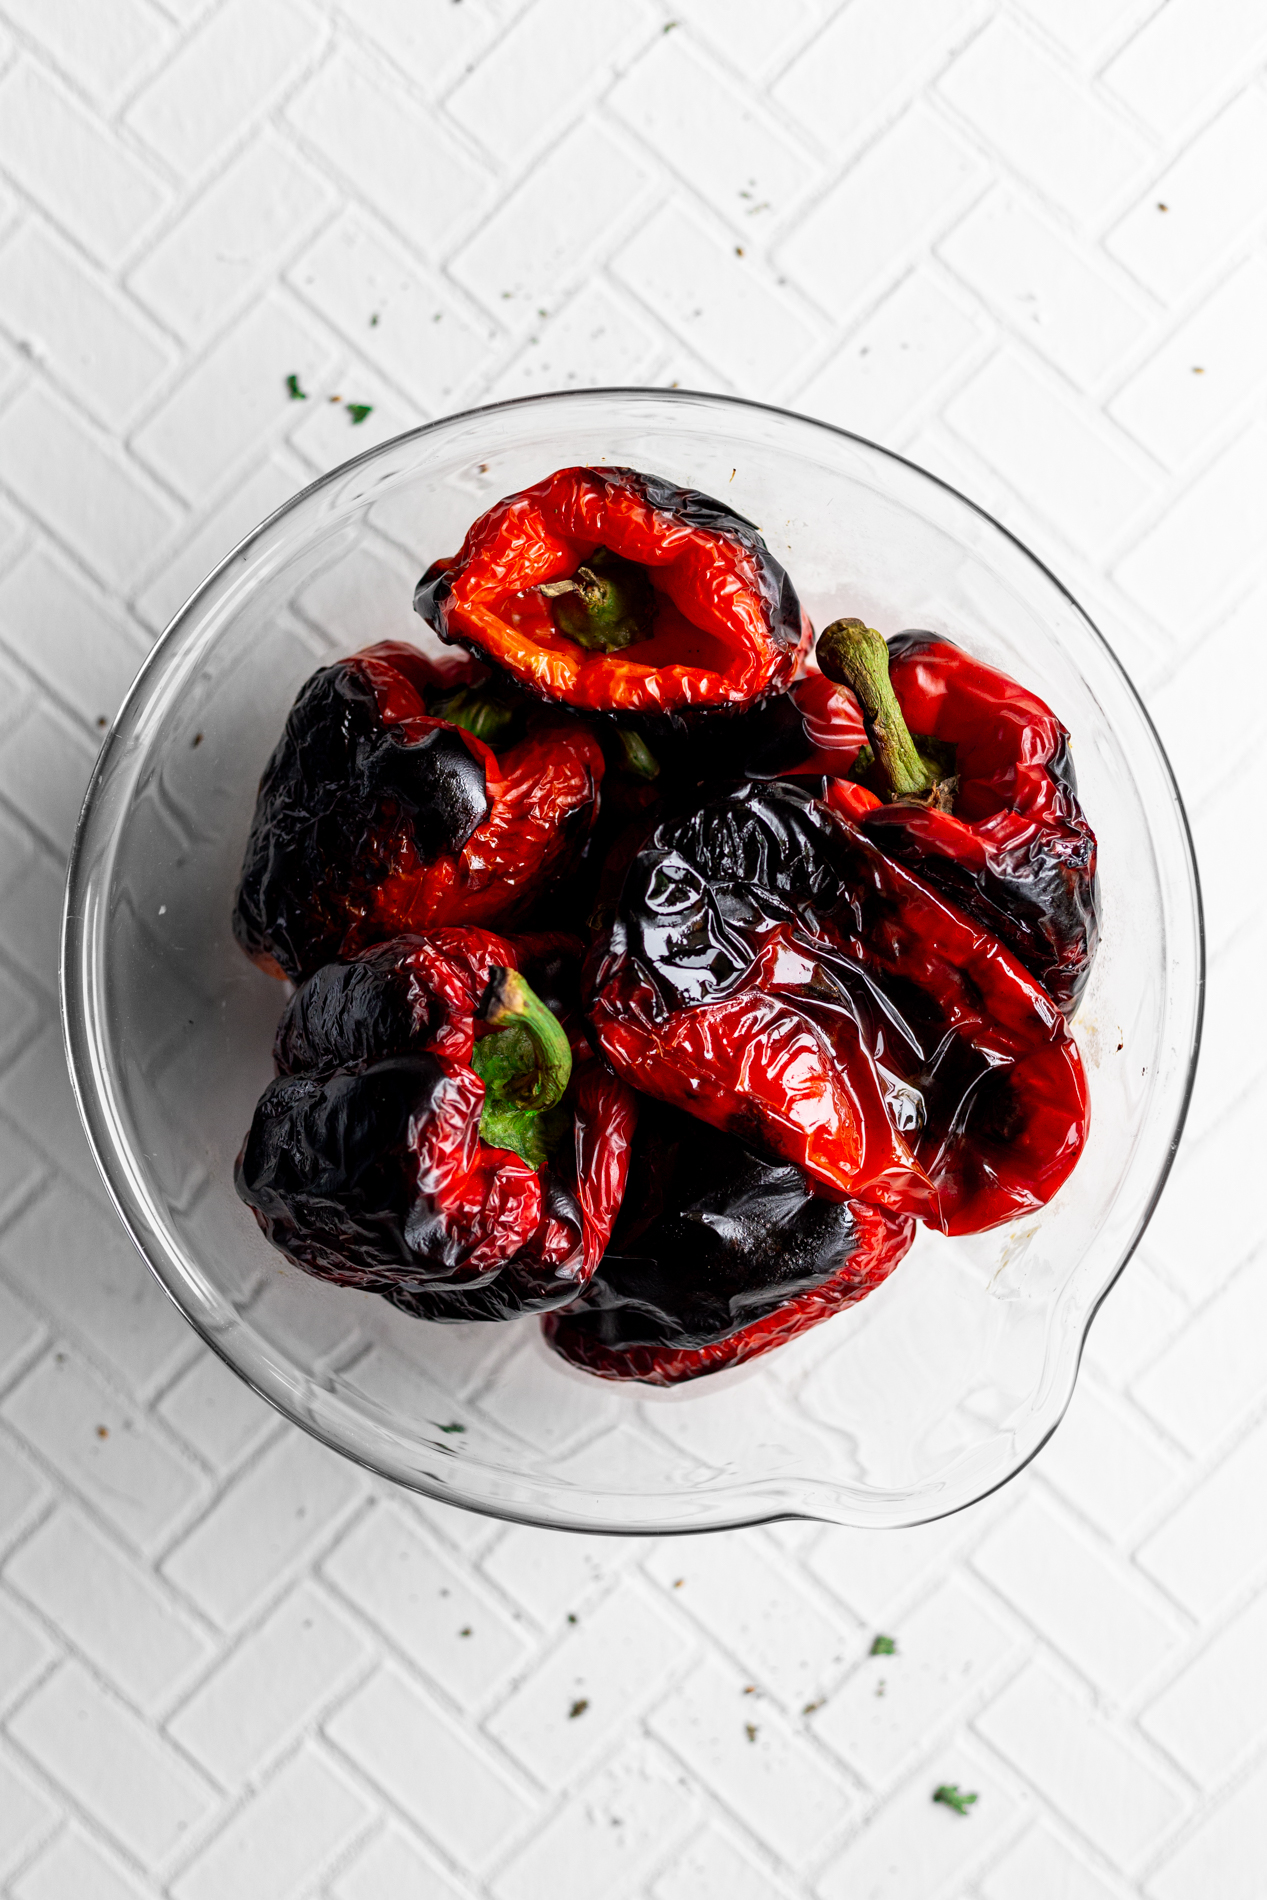 red bell peppers in a bowl after being roasted